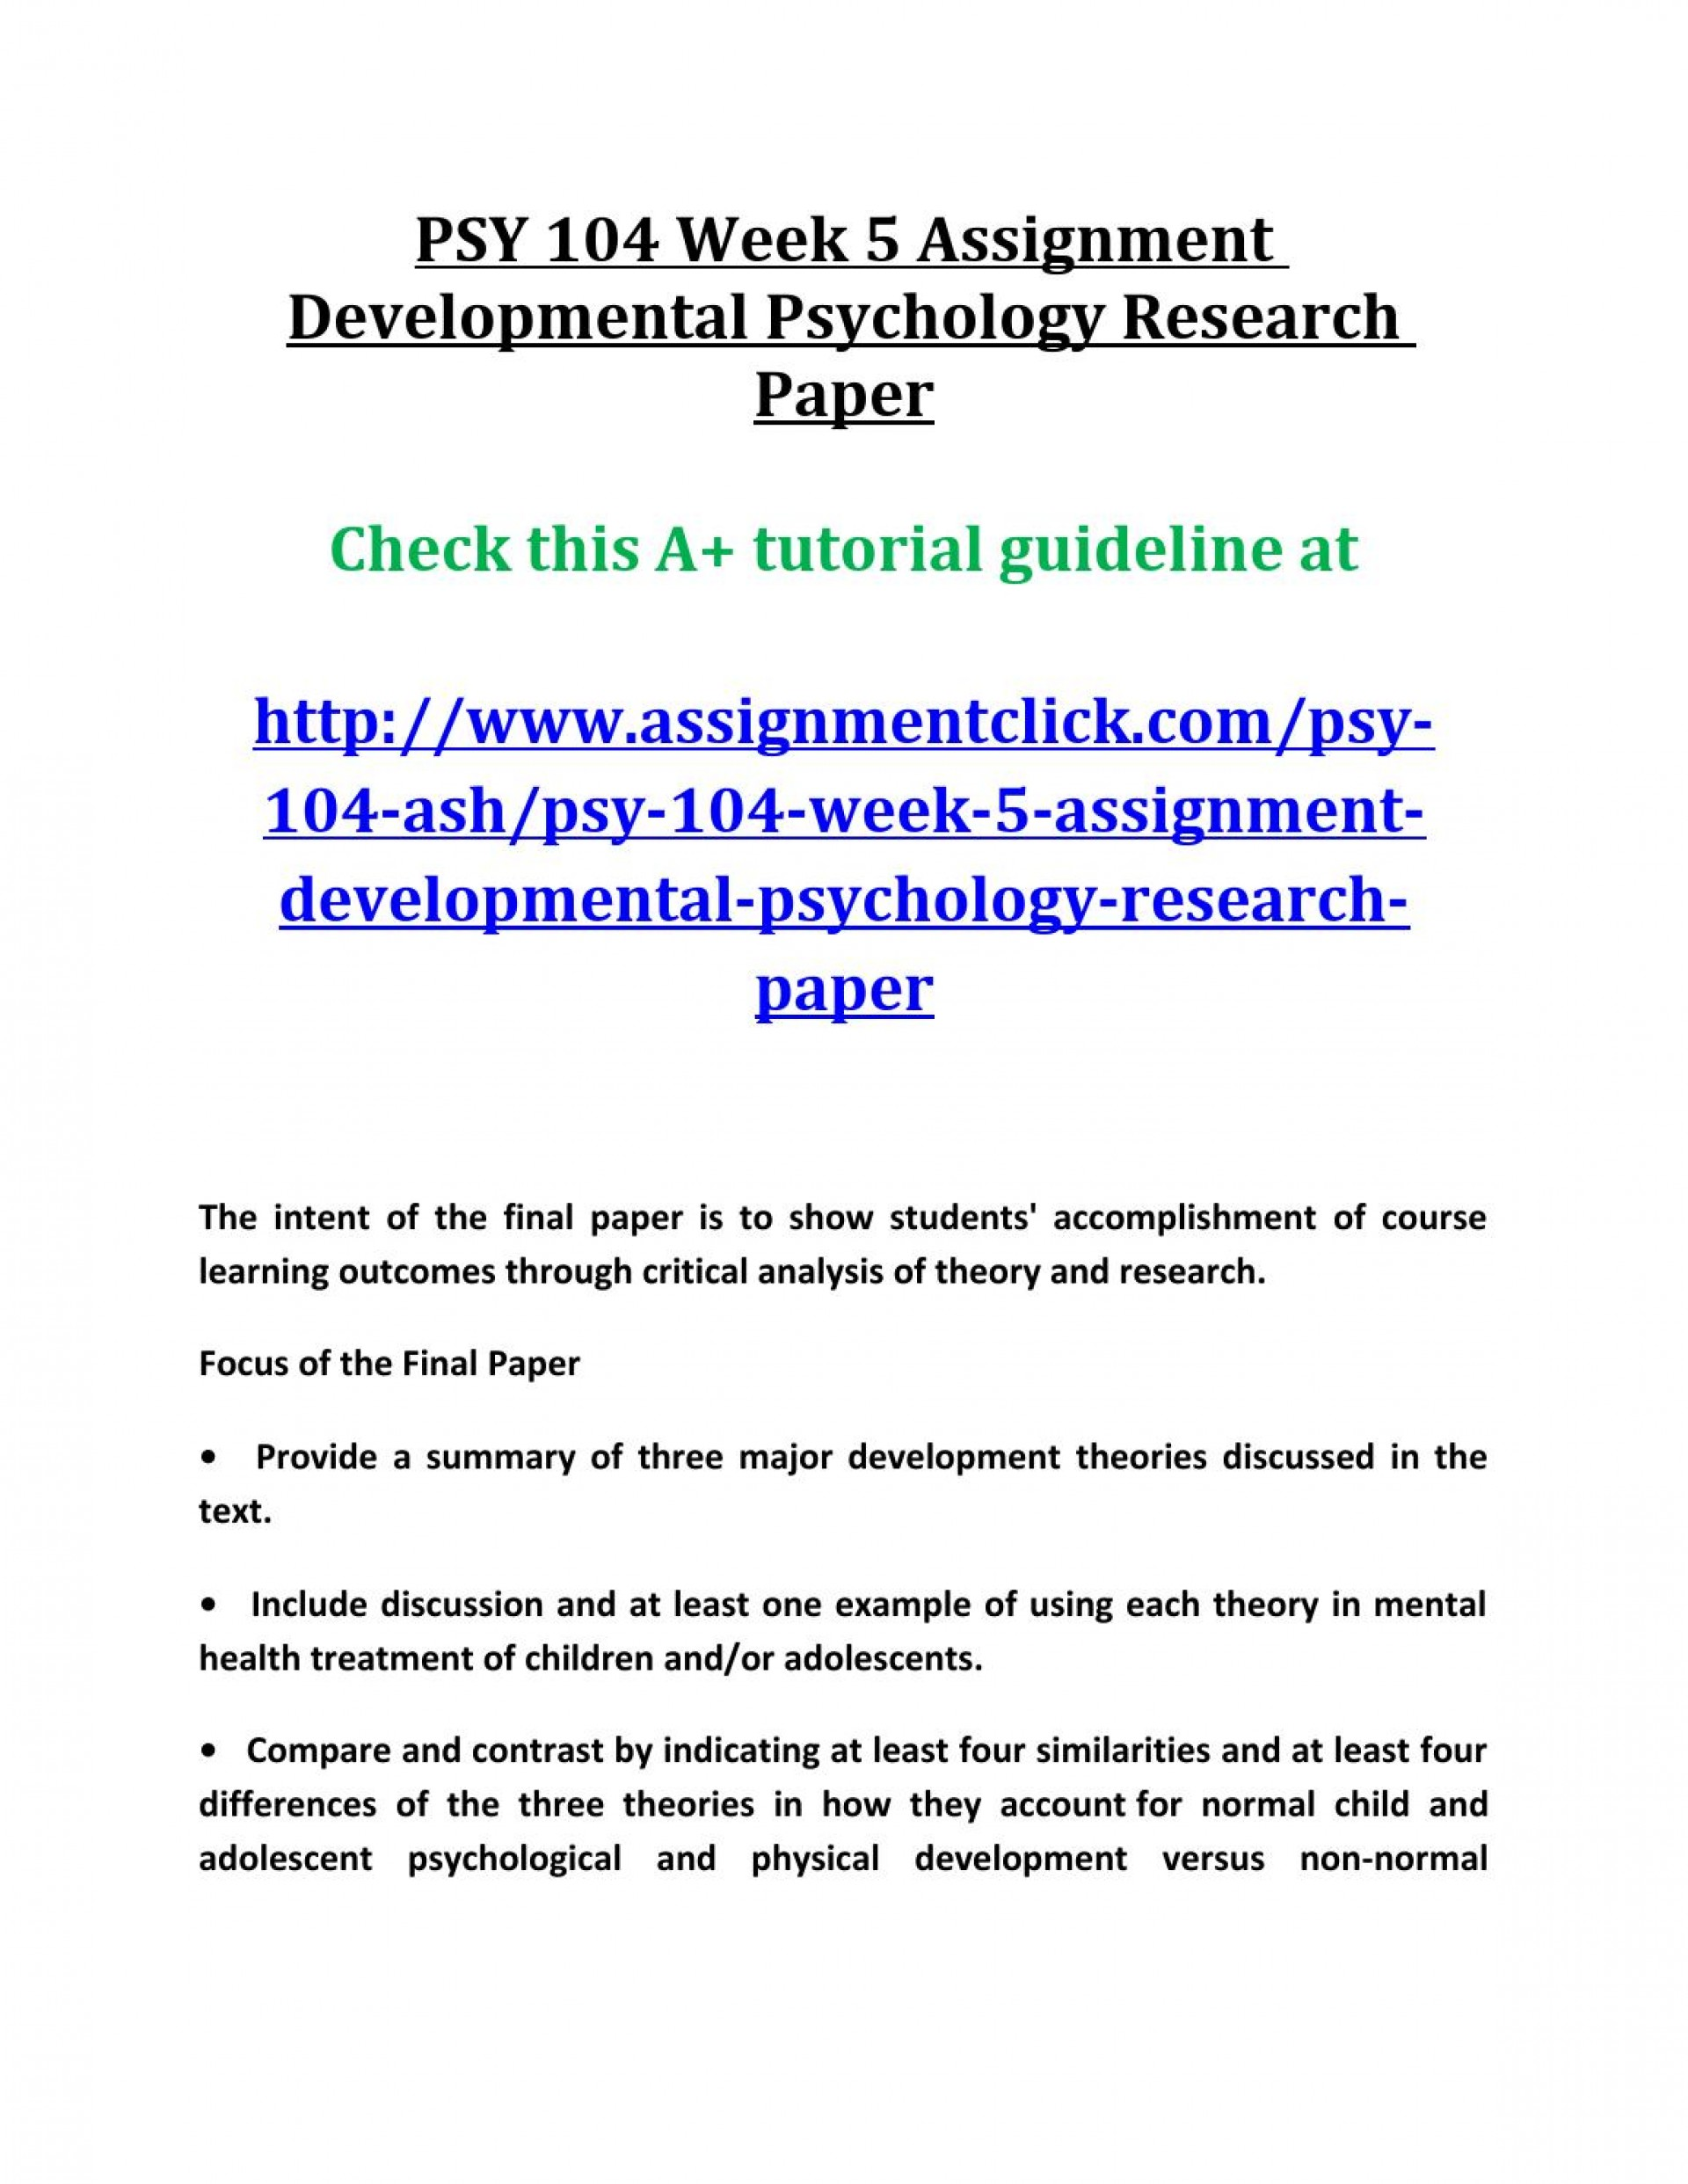 008 Developmental Psychology Research Paper Example Page 1 Sensational Sample 1920